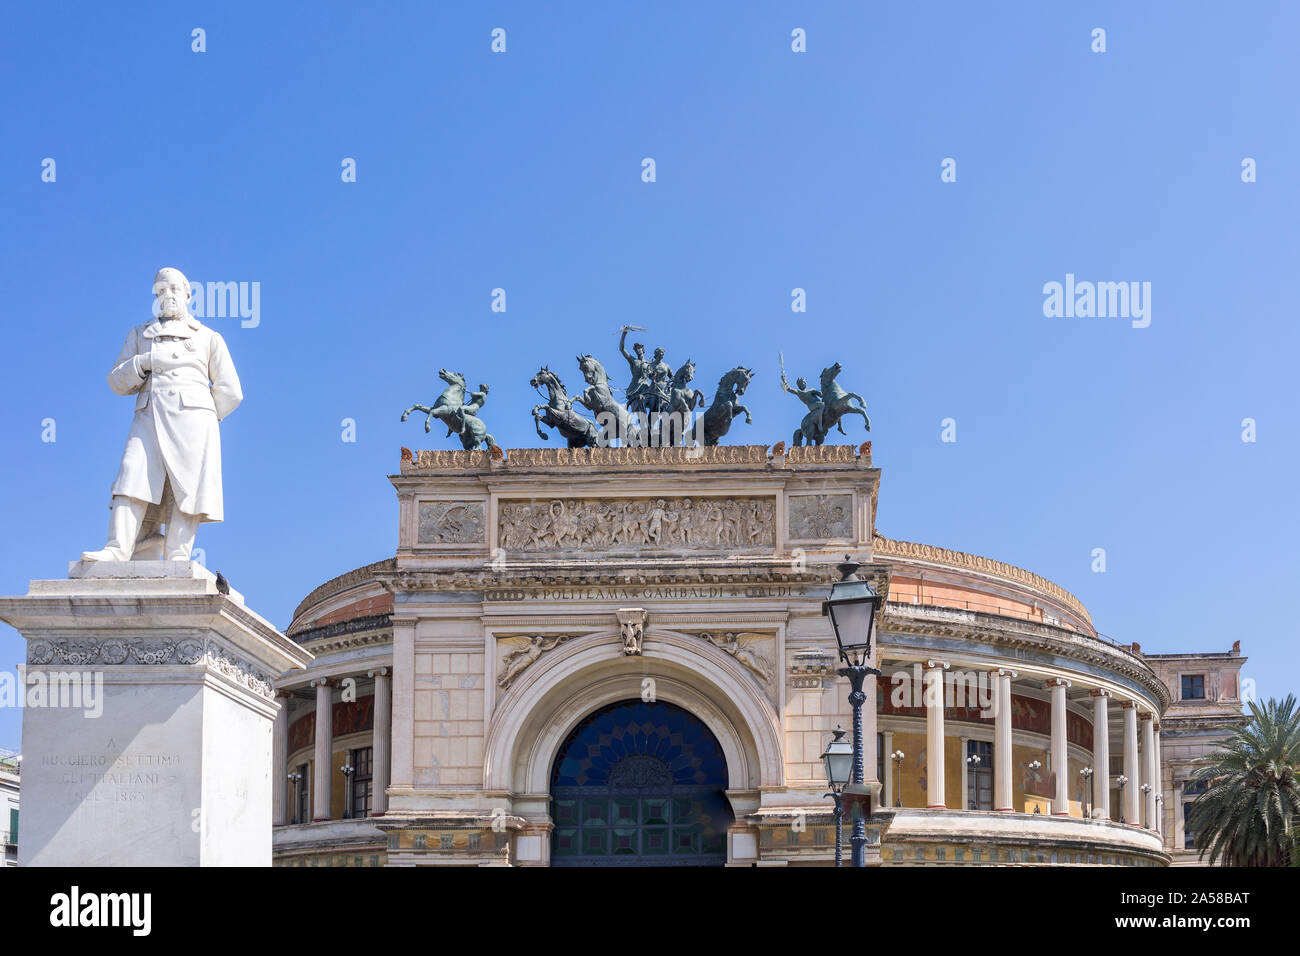 Palermo, Sicily - Marc 23, 2019: Teatro Politeama Palermo, Politeama Theatre front view in daylight with copy space. Stock Photo